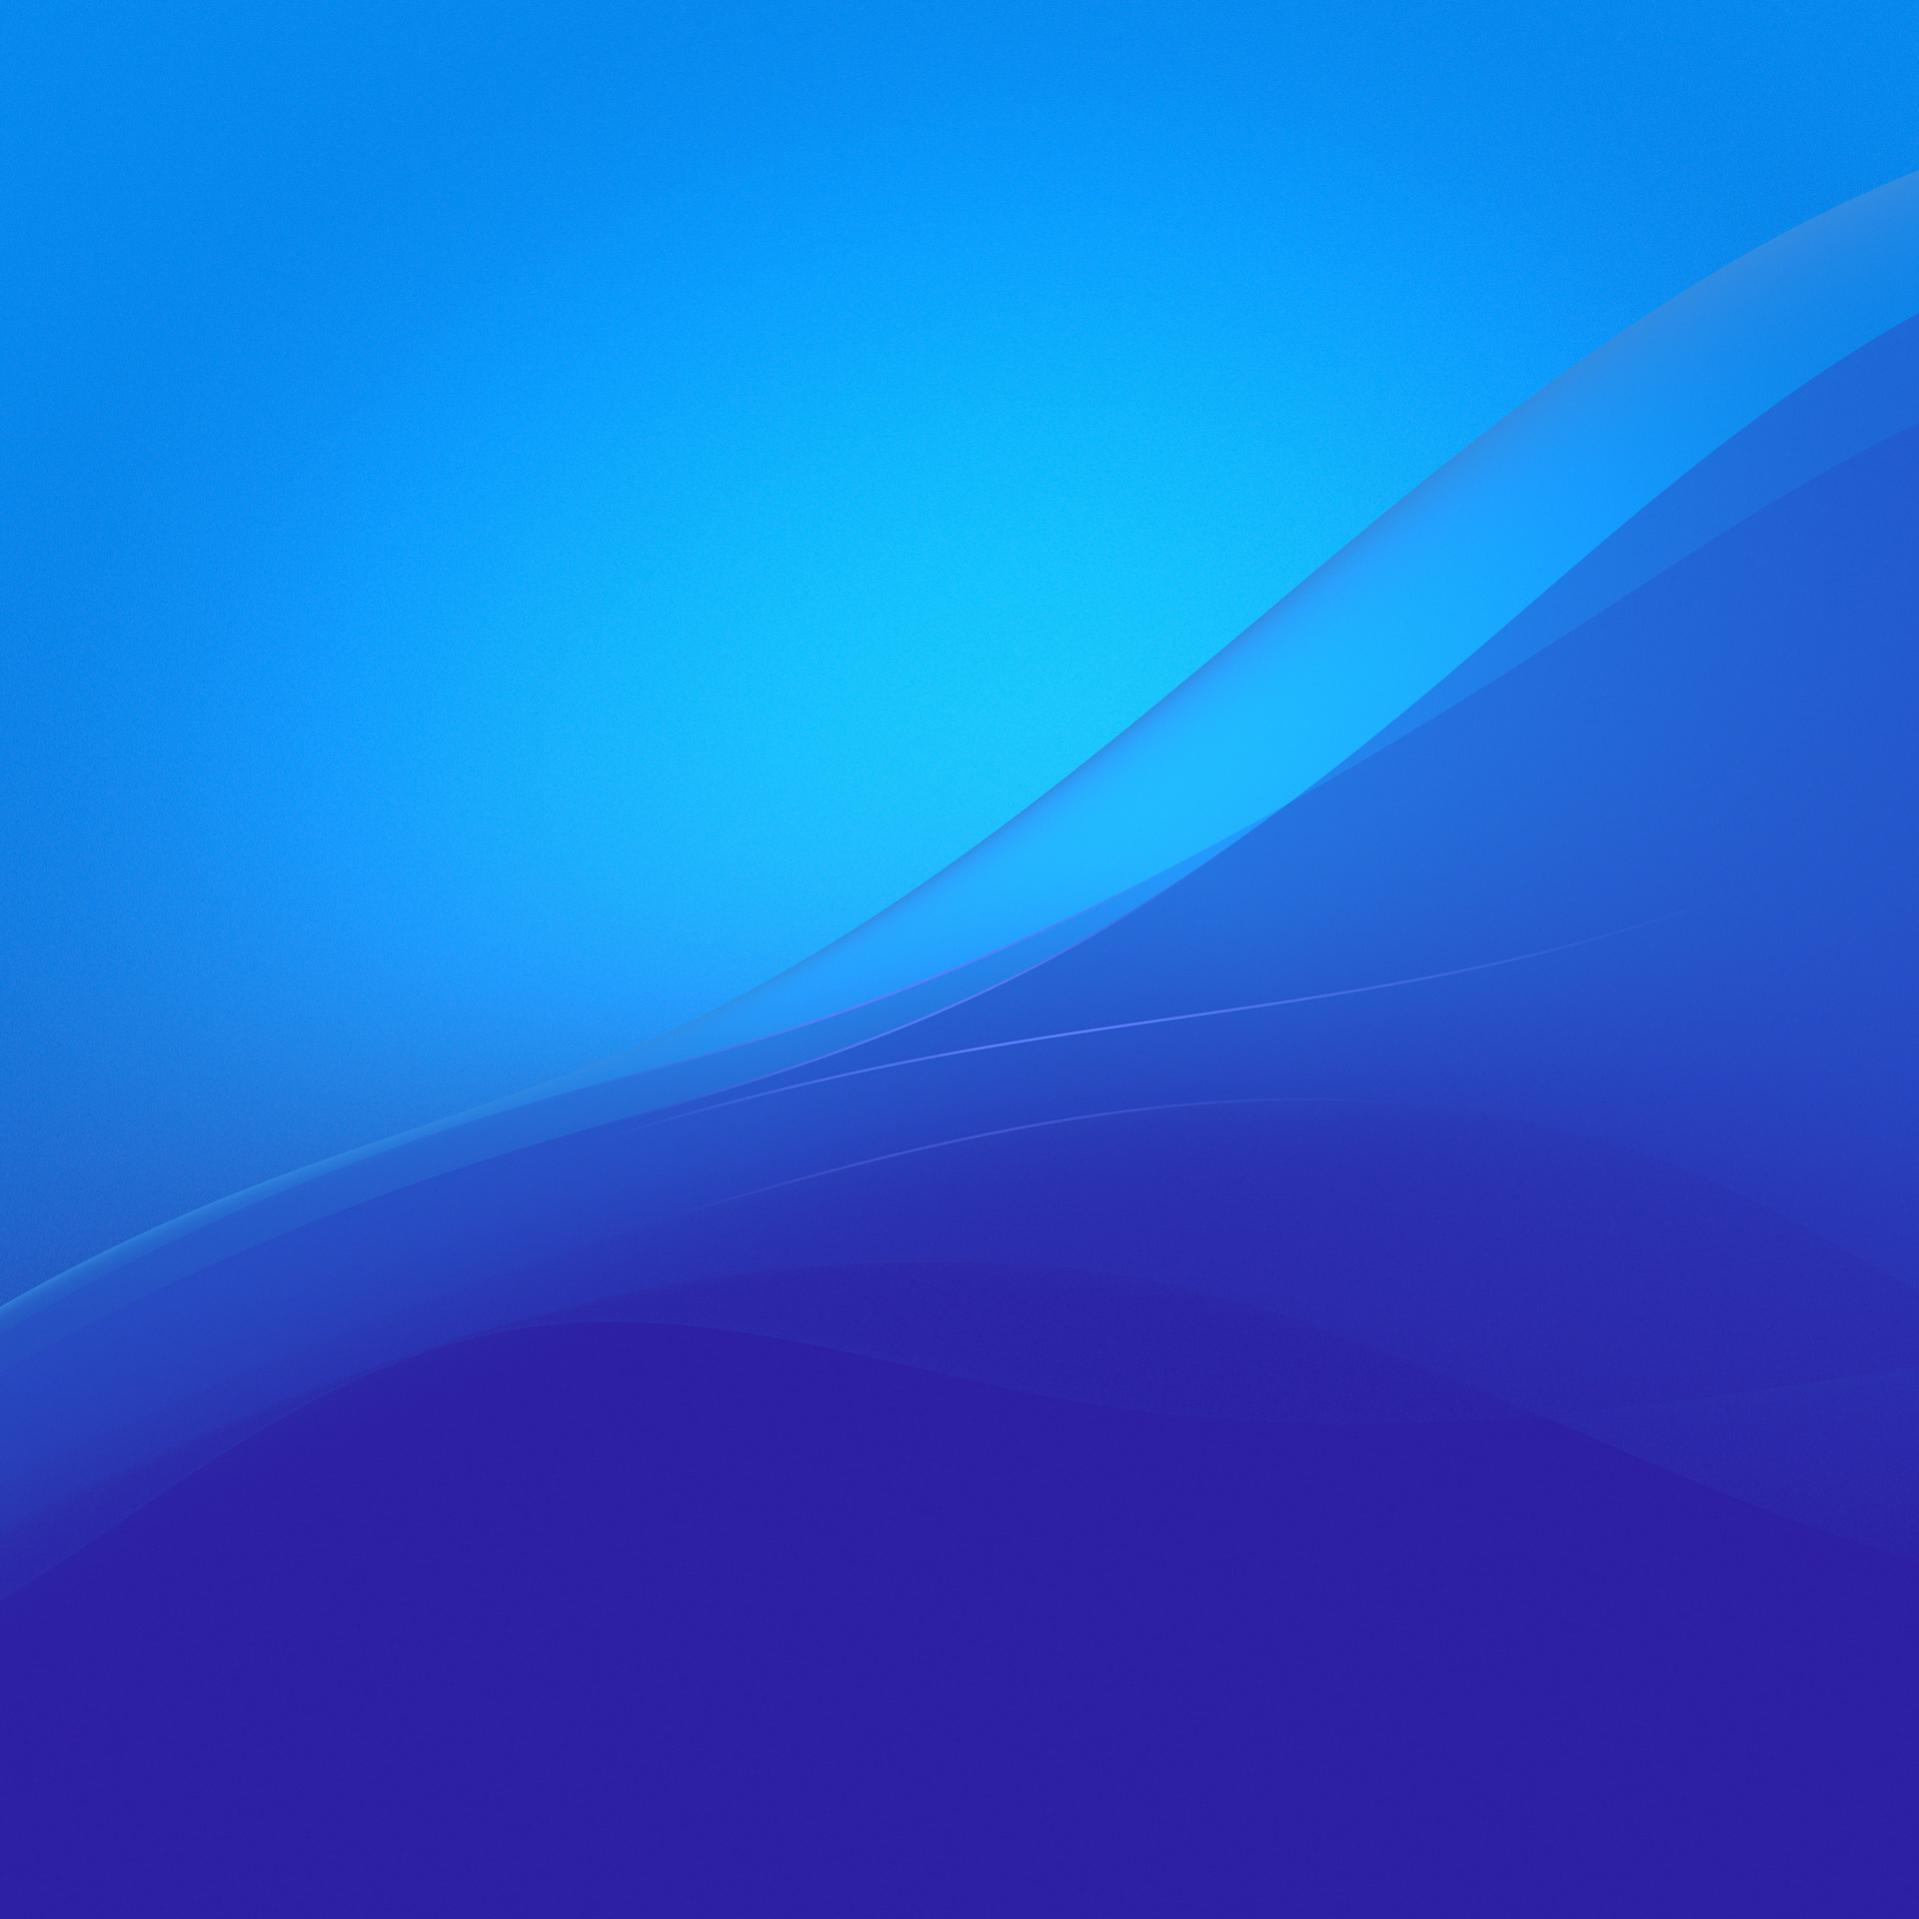 Hd wallpaper xperia z3 - Official Xperia Wallpaper From Lollipop Firmware In Blue Color